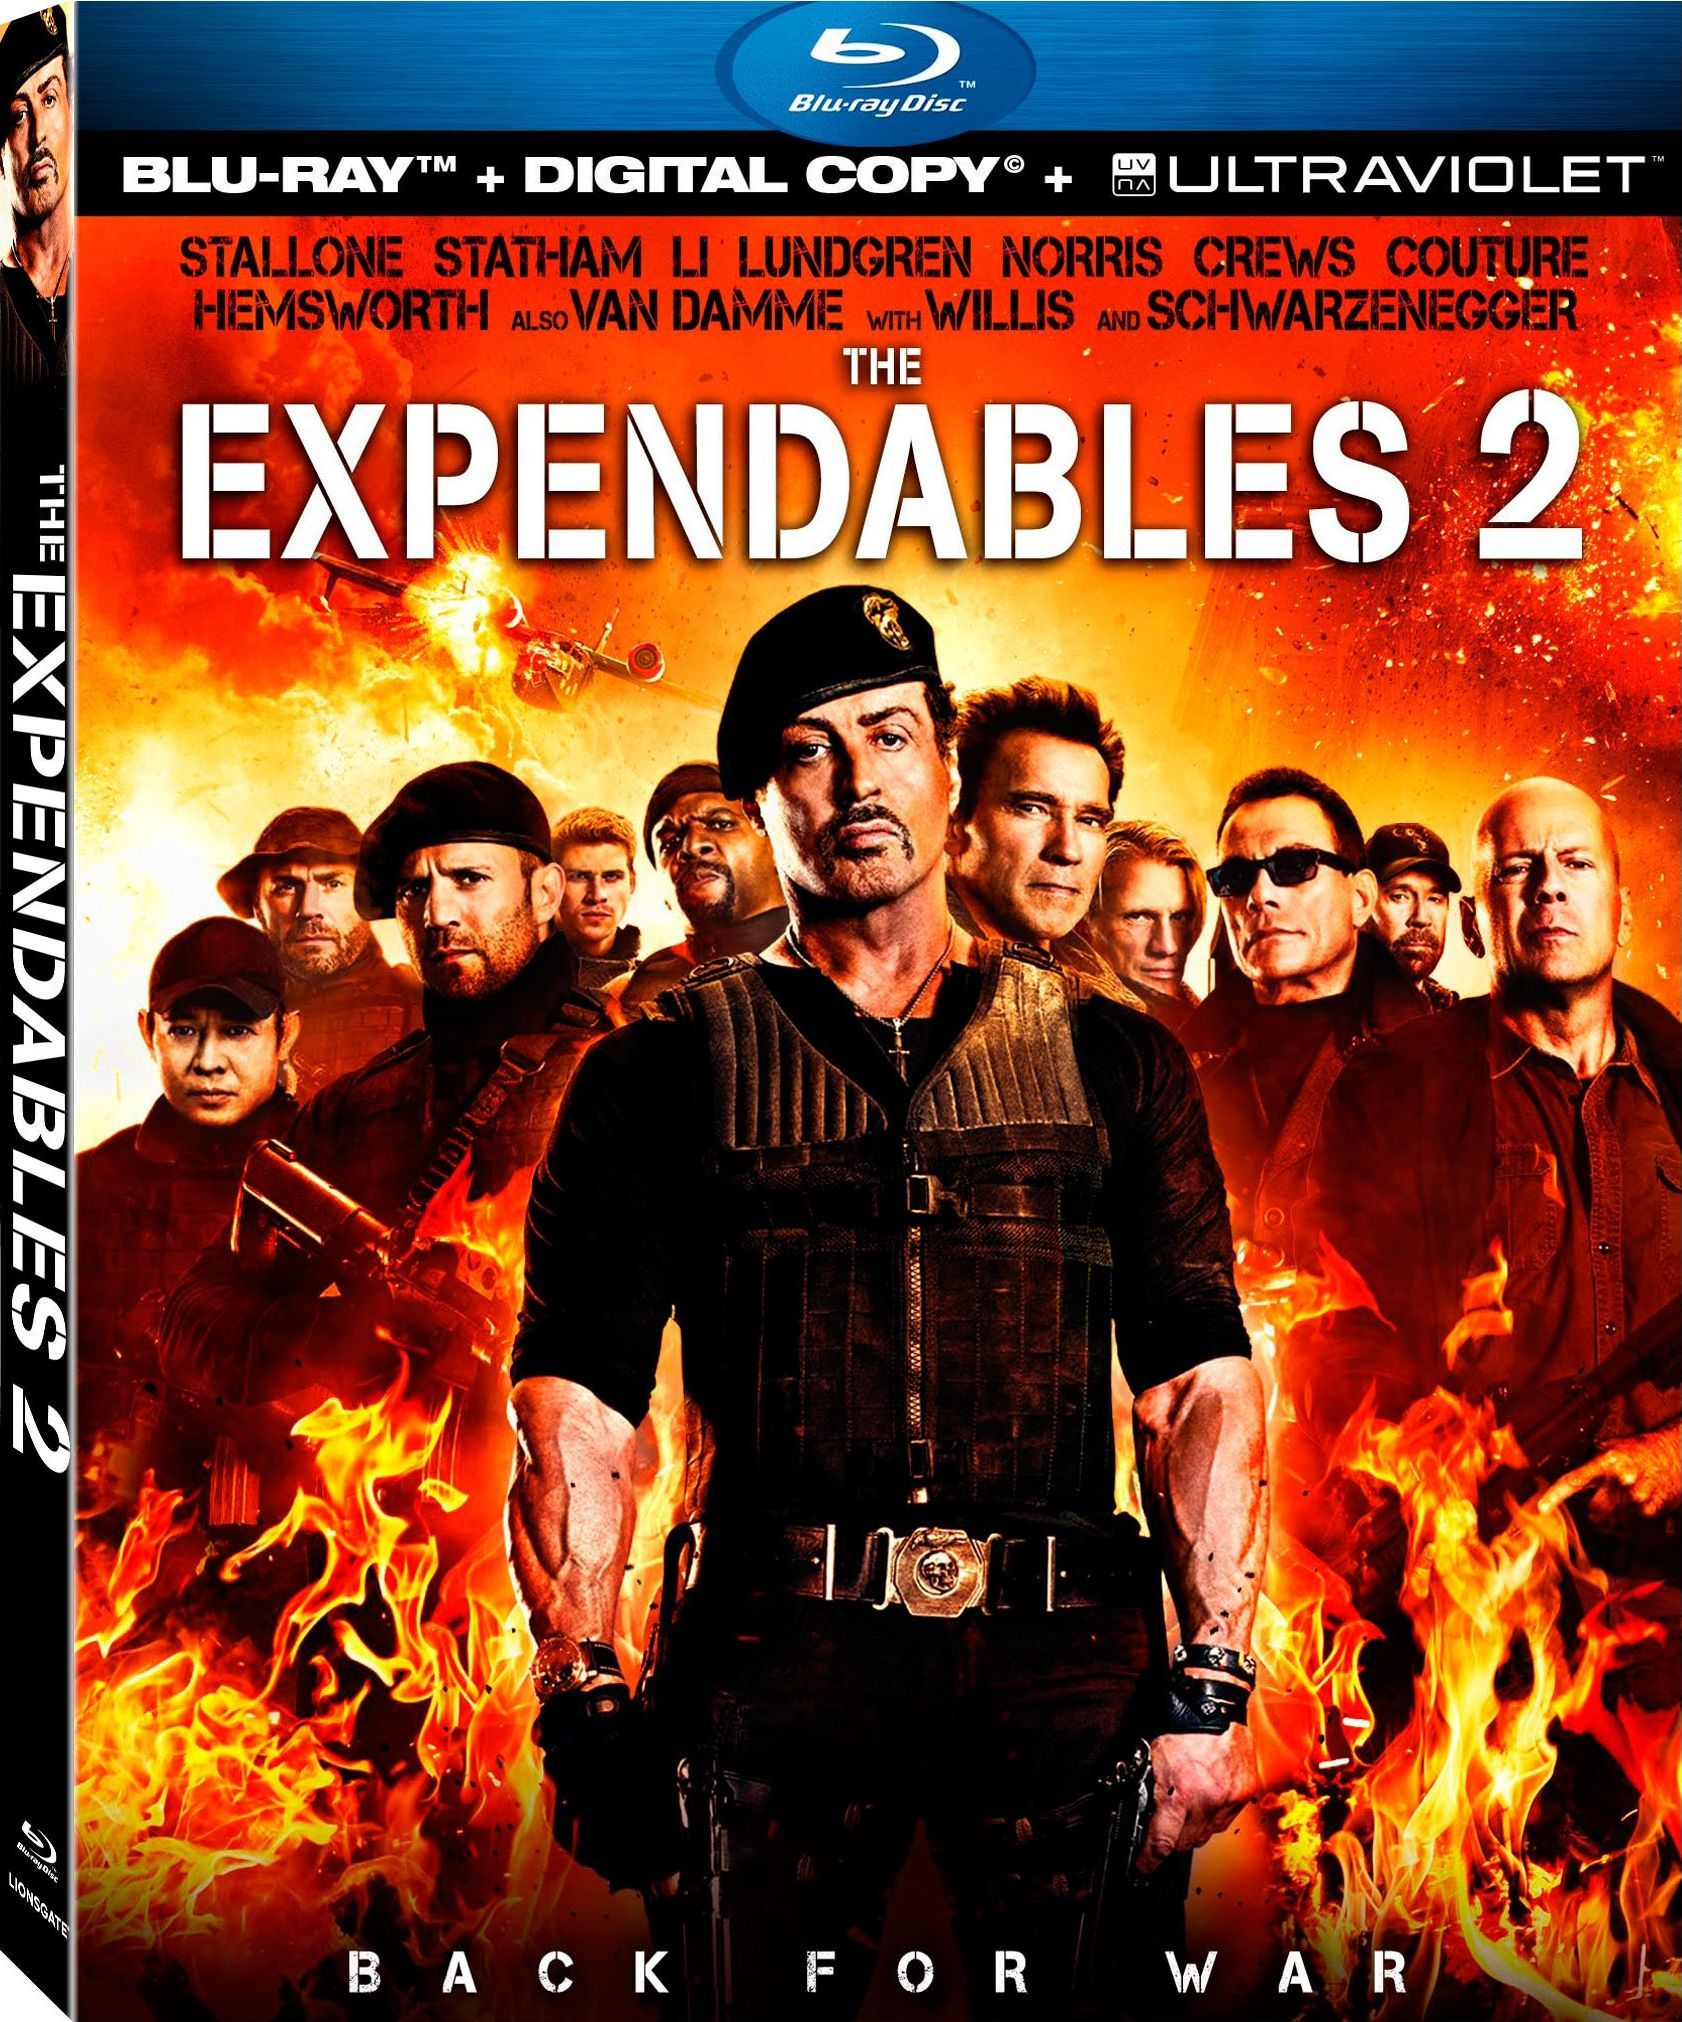 THE EXPENDABLES 2 Blu-ray Review | Collider